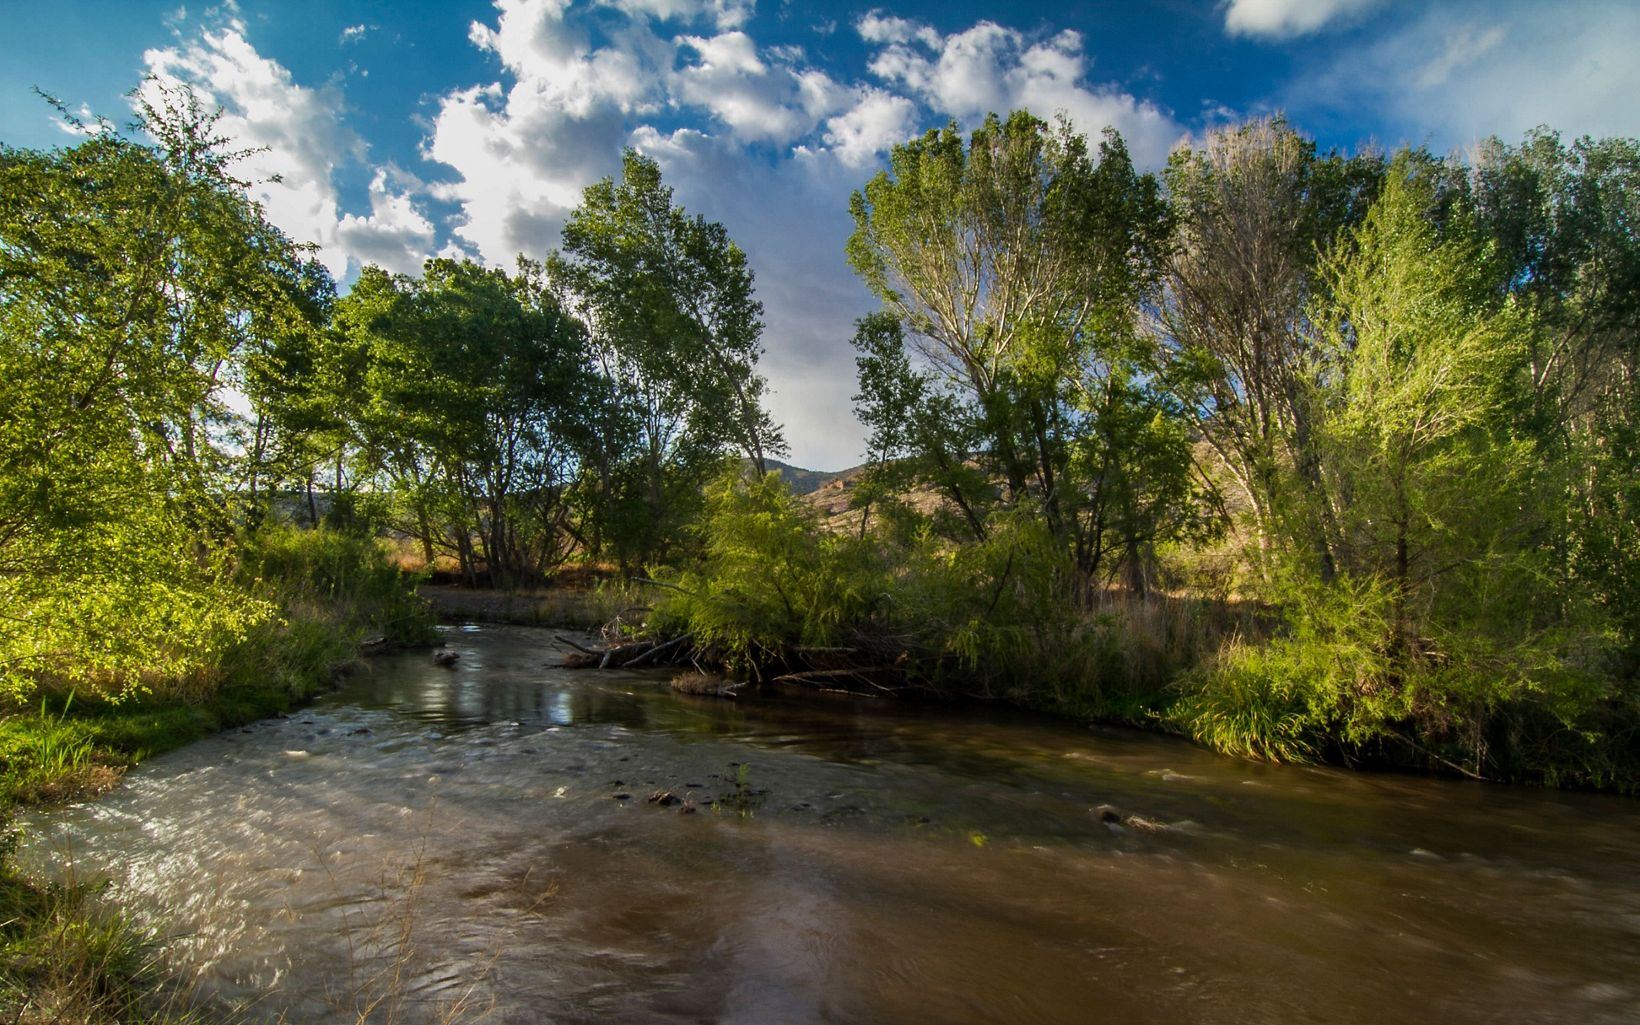 protects more than 1,200 acres of the Southwest's fragile riparian habitat and the verdant gallery woodland along the Gila River in New Mexico.